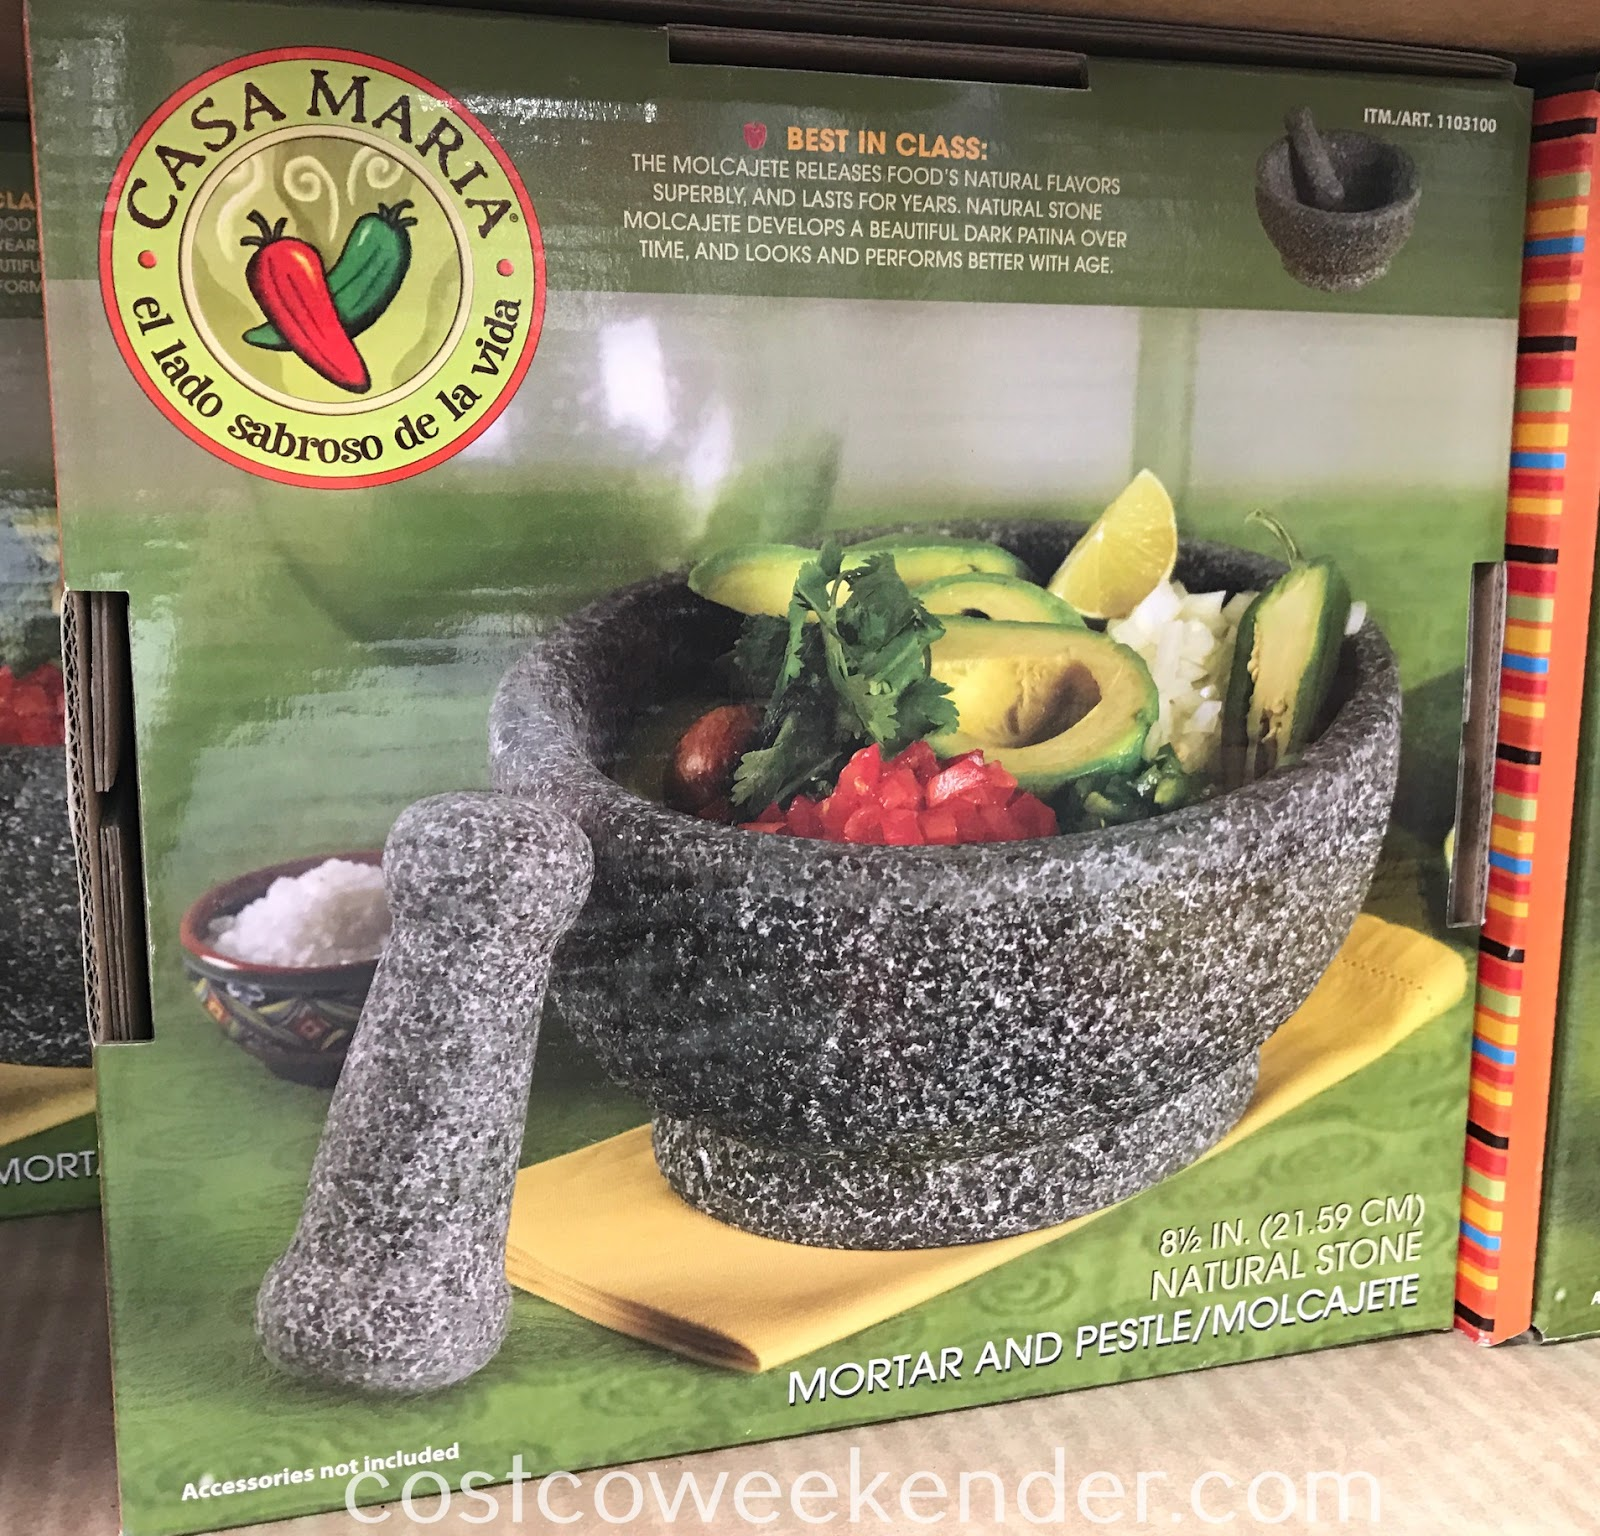 Make great guacamole for your next party with the Casa Maria Mortar & Pestle